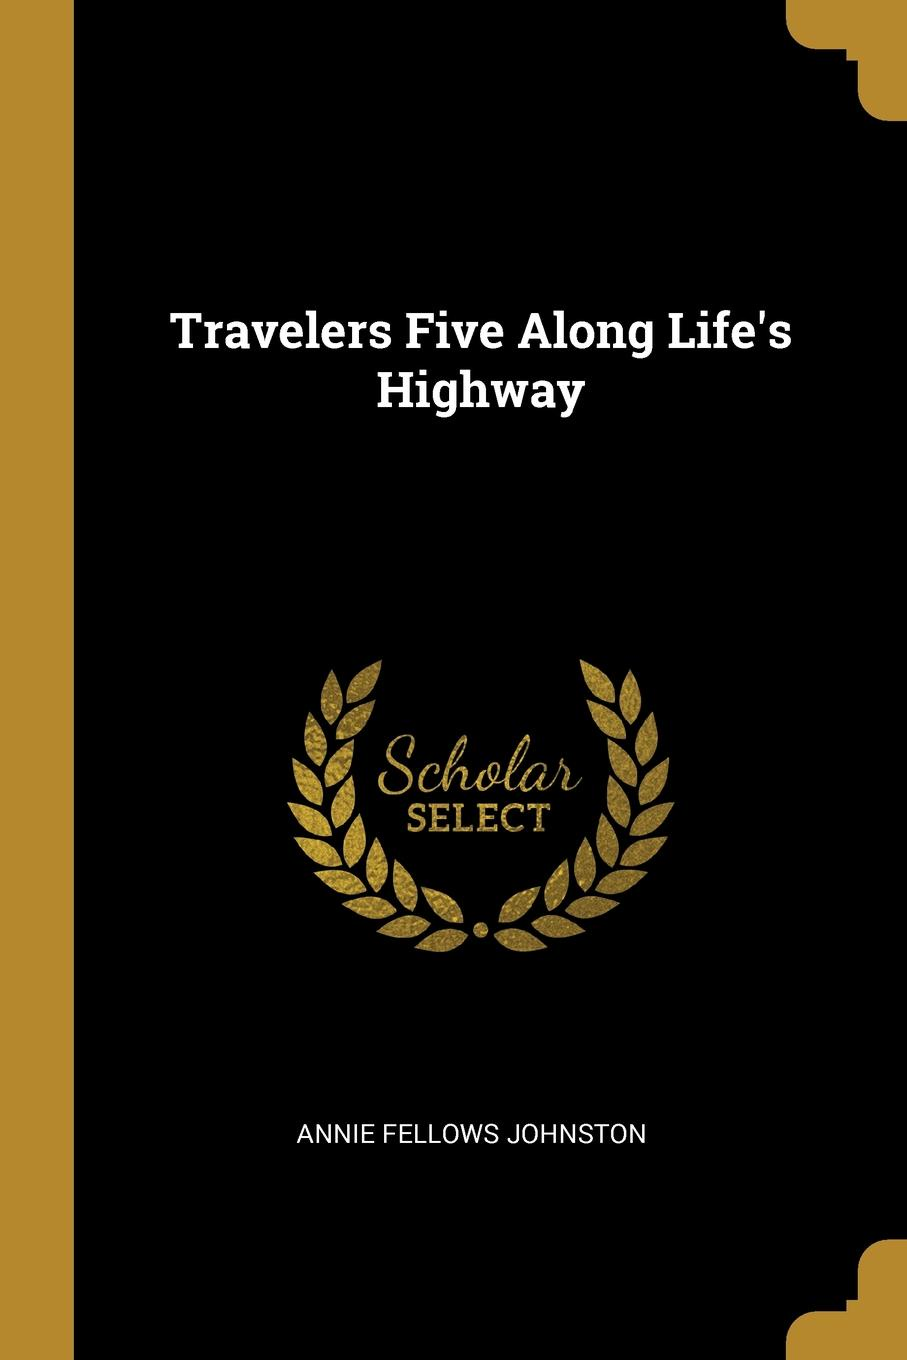 Annie Fellows Johnston. Travelers Five Along Life.s Highway